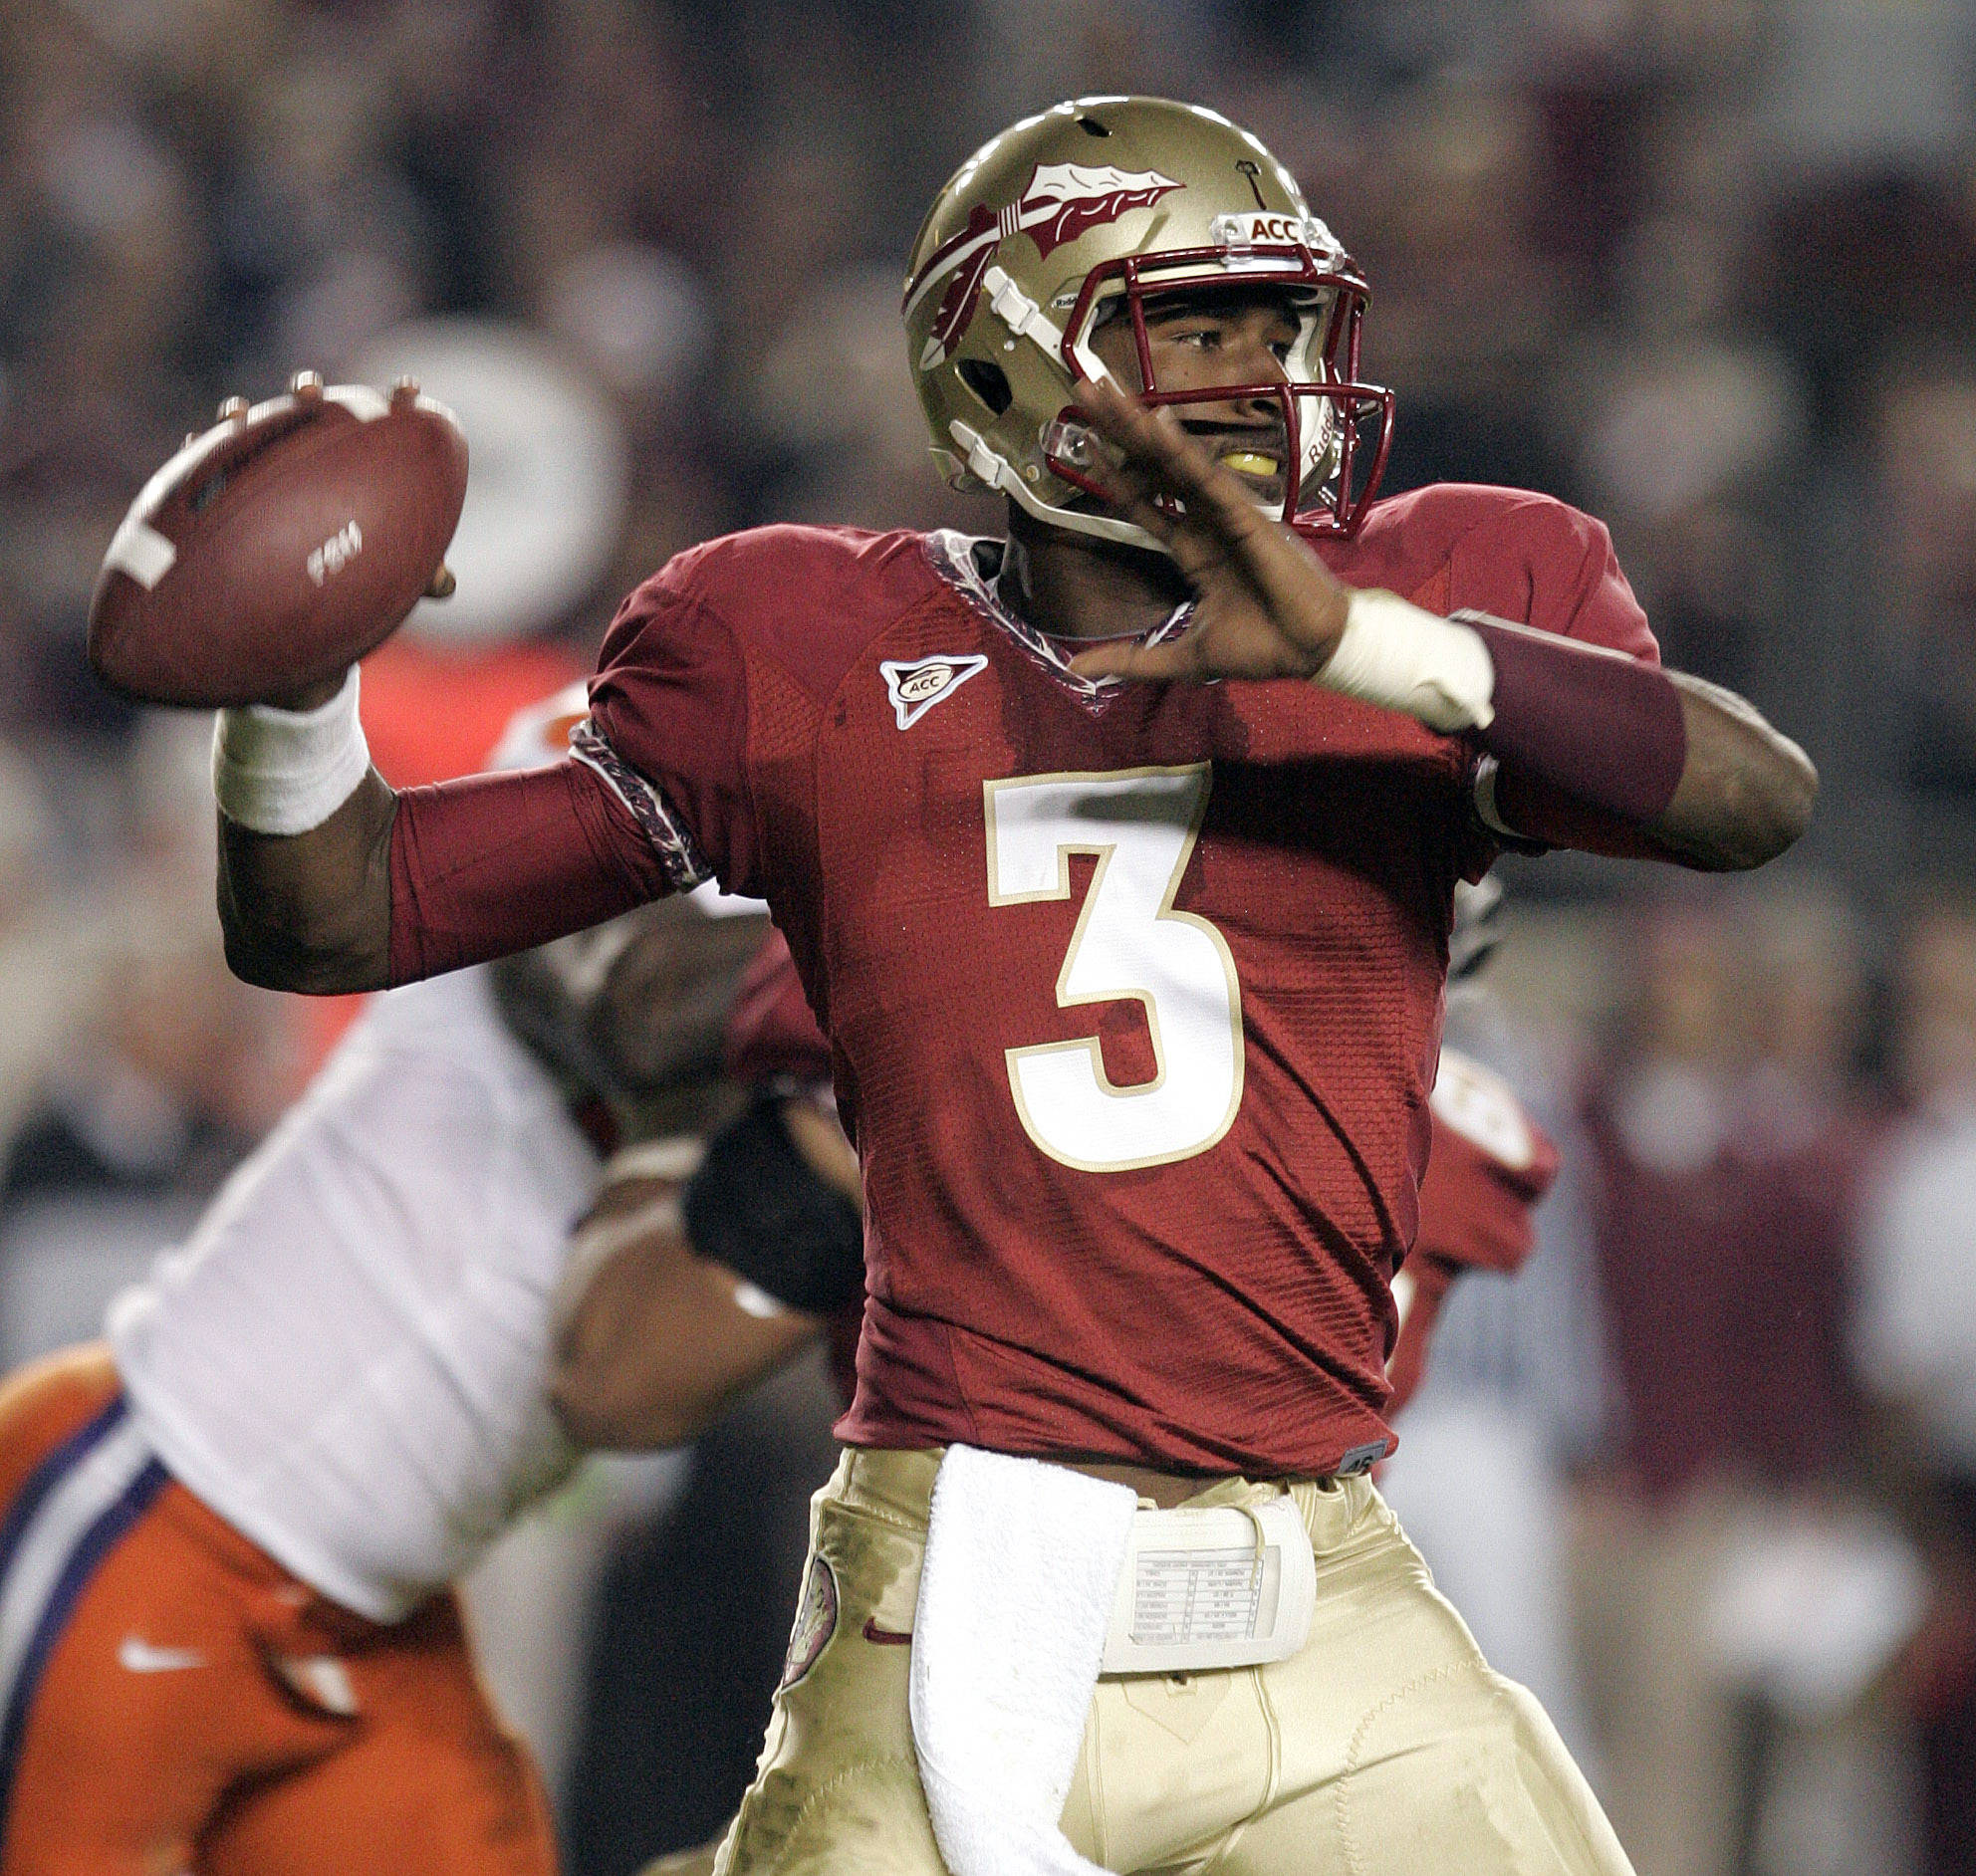 Florida State's EJ Manuel attempts a pass against Clemson's defense in the second quarter of an NCAA college football game on Saturday, Nov. 13, 2010, in Tallahassee, Fla.(AP Photo/Steve Cannon)